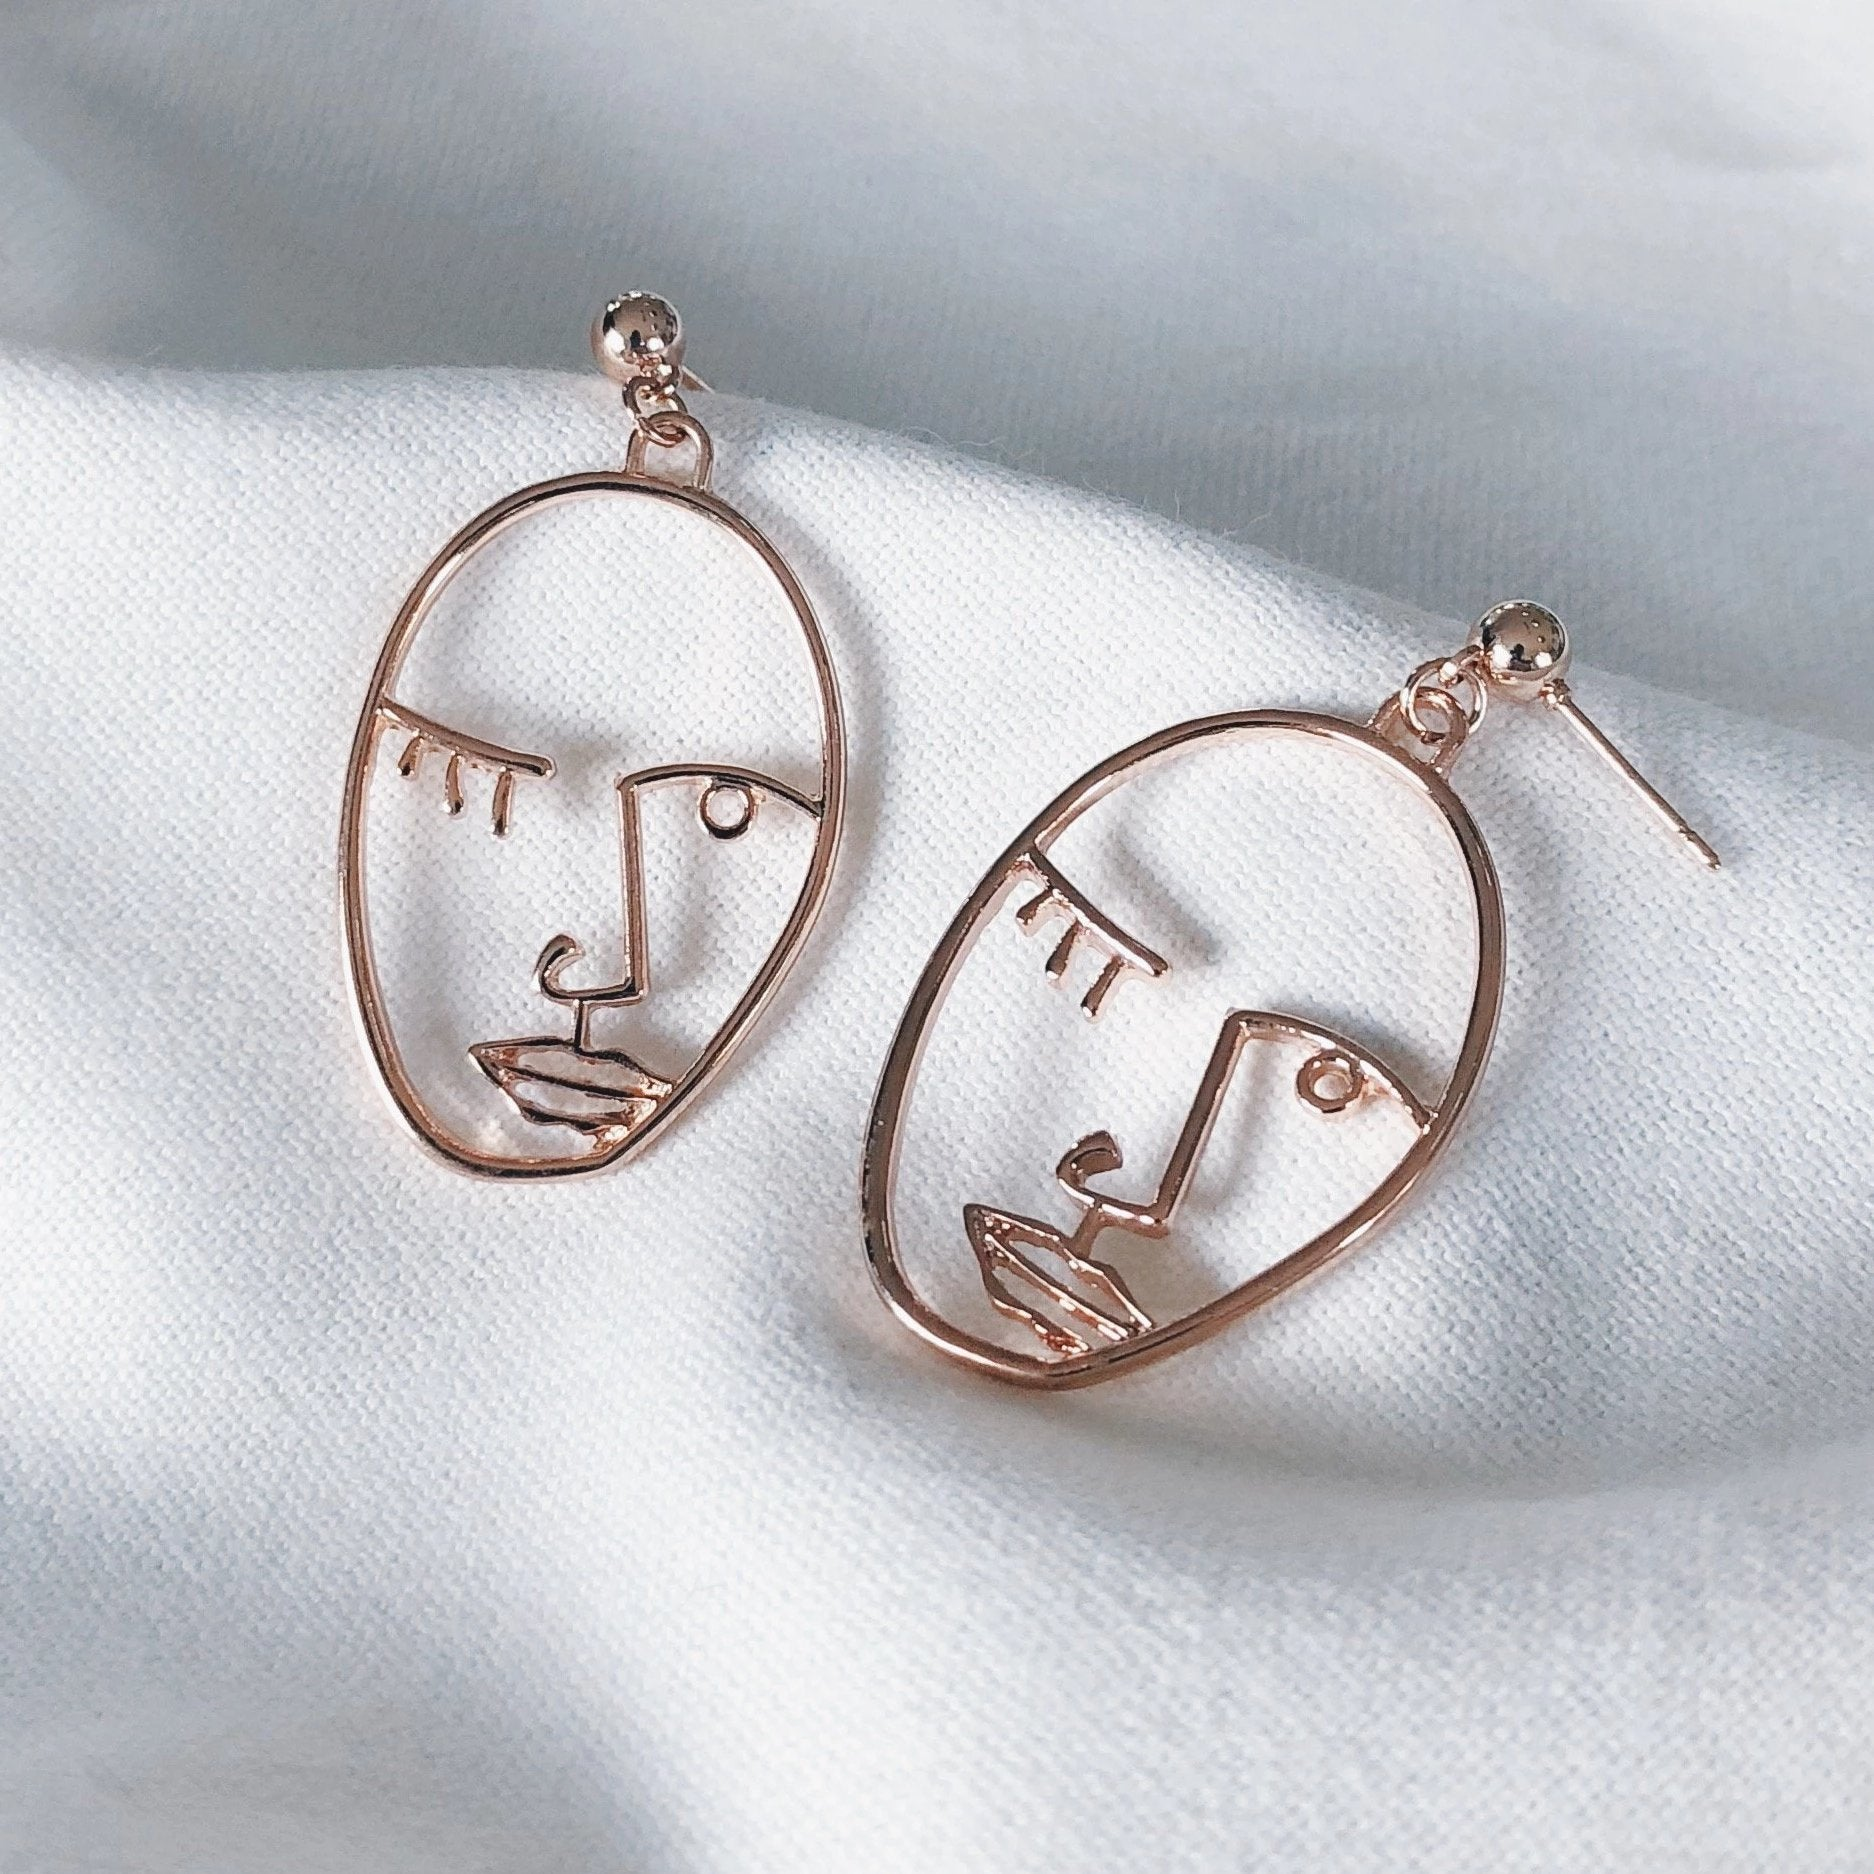 nascul wink gold or rose gold earrings as part of nascul's special earring giveaway promo